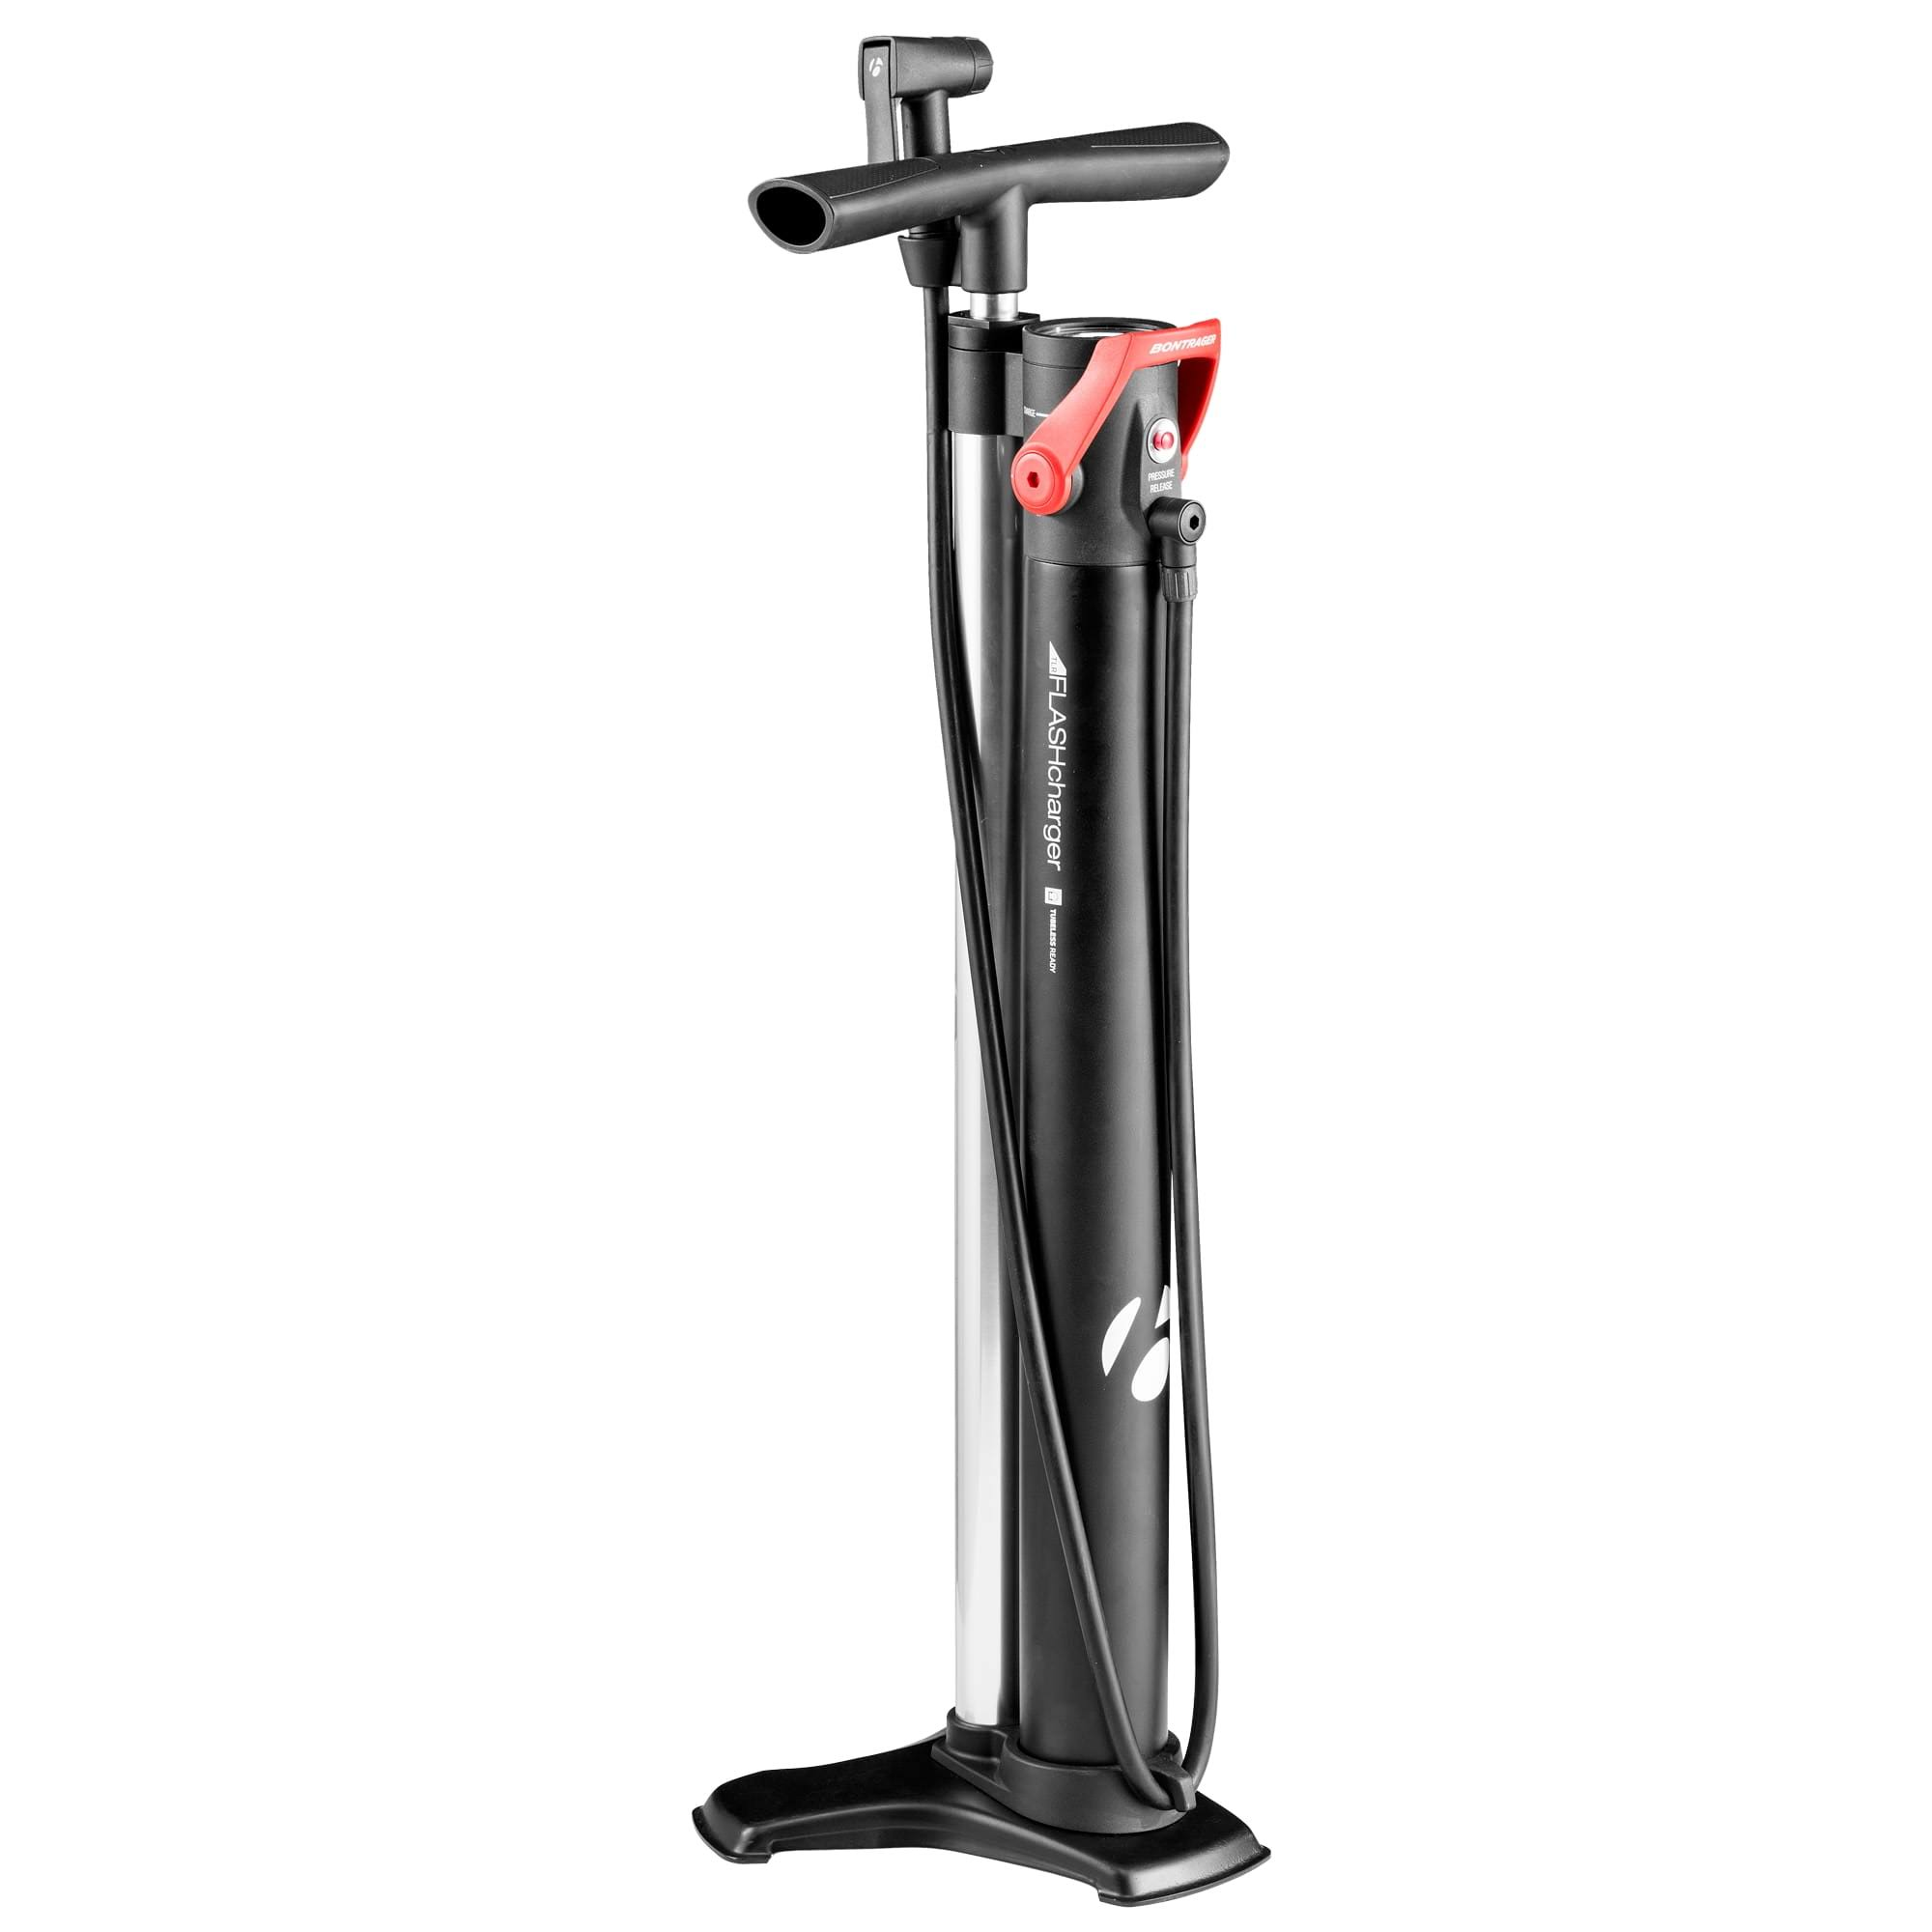 Bontrager Flash Charger Tubeless Ready Bicycle Pump